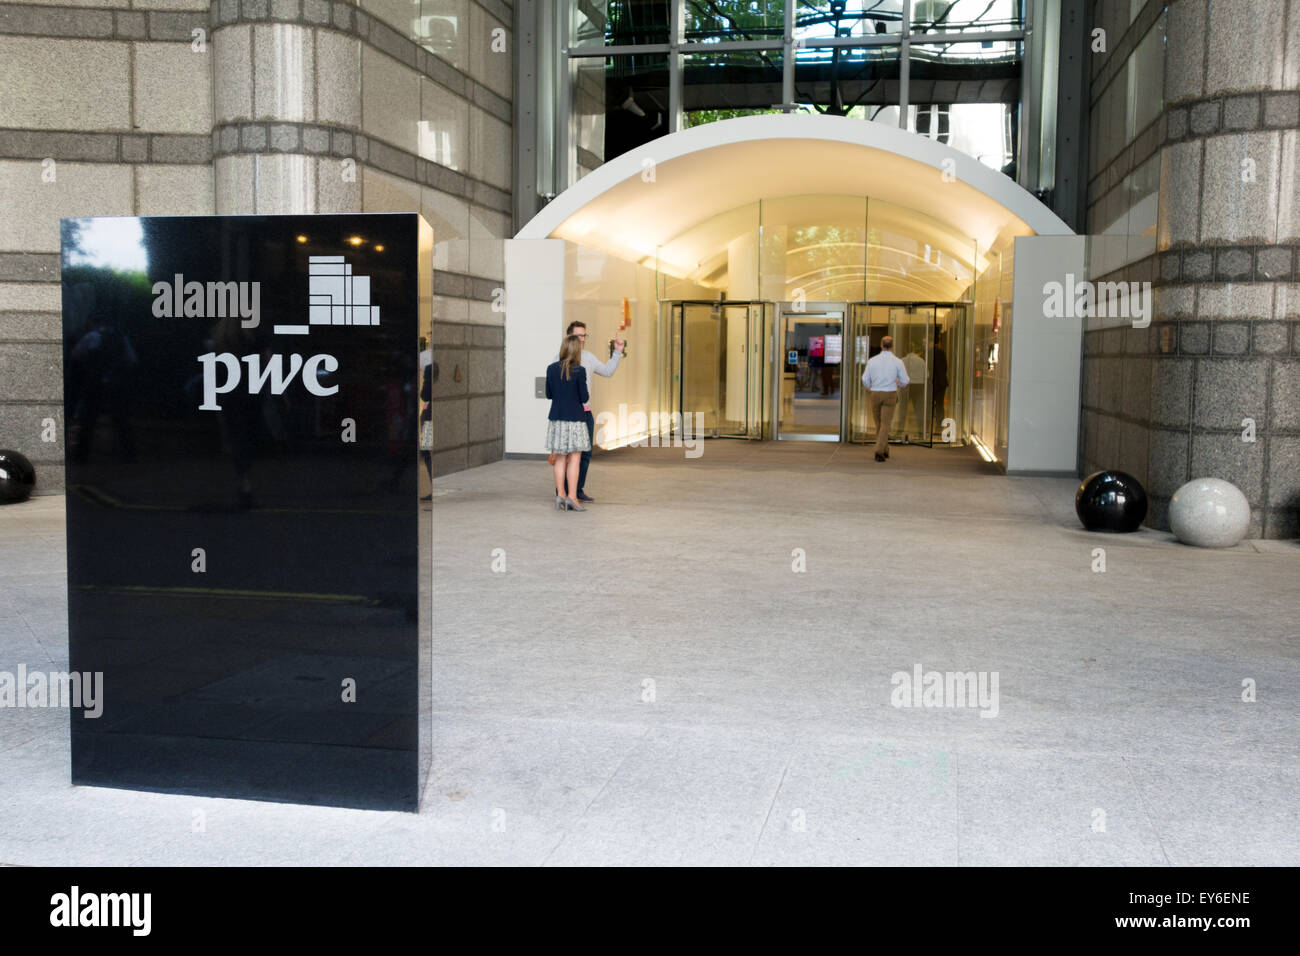 London headquarters of the accountancy firm Price Waterhouse Coopers, one of the Big Four accounting firms;   PwC - Stock Image